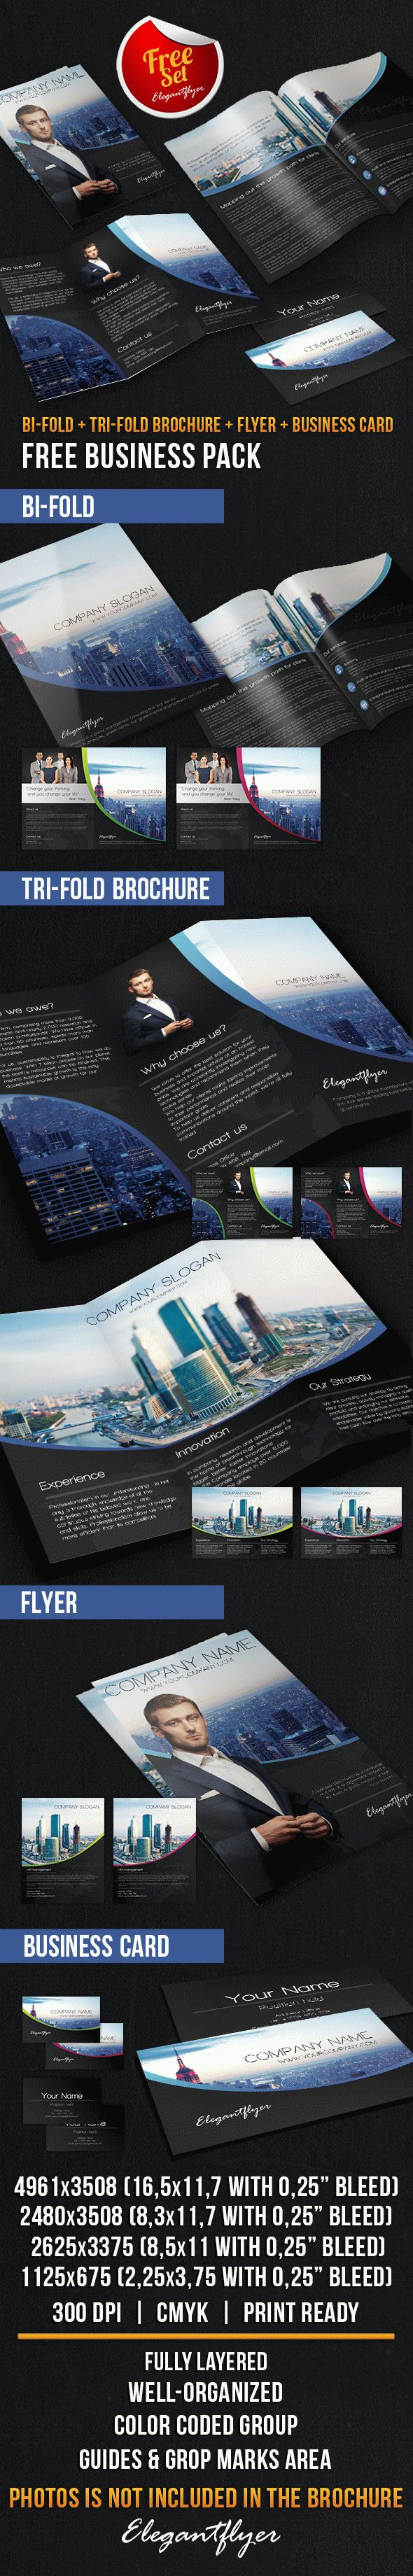 Business Brochure Pack – Free PSD Template